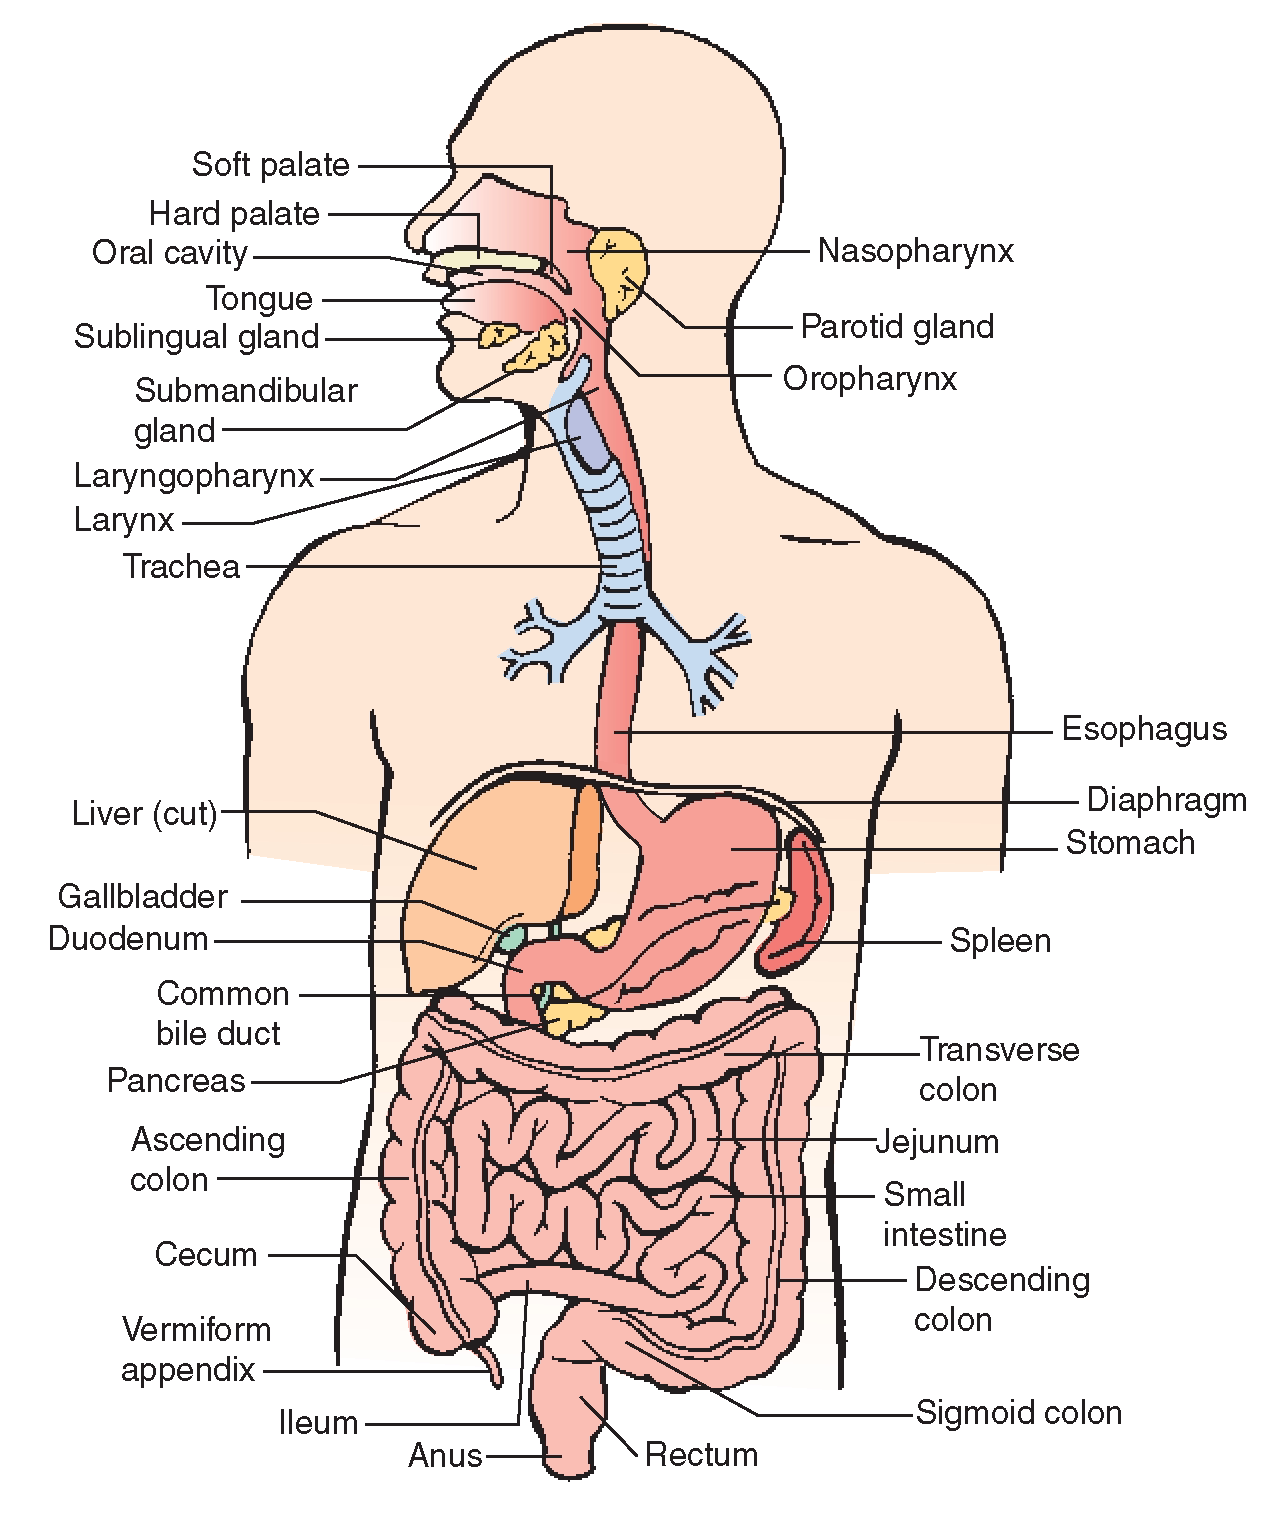 hight resolution of a picture labeling all the parts in the digestive system